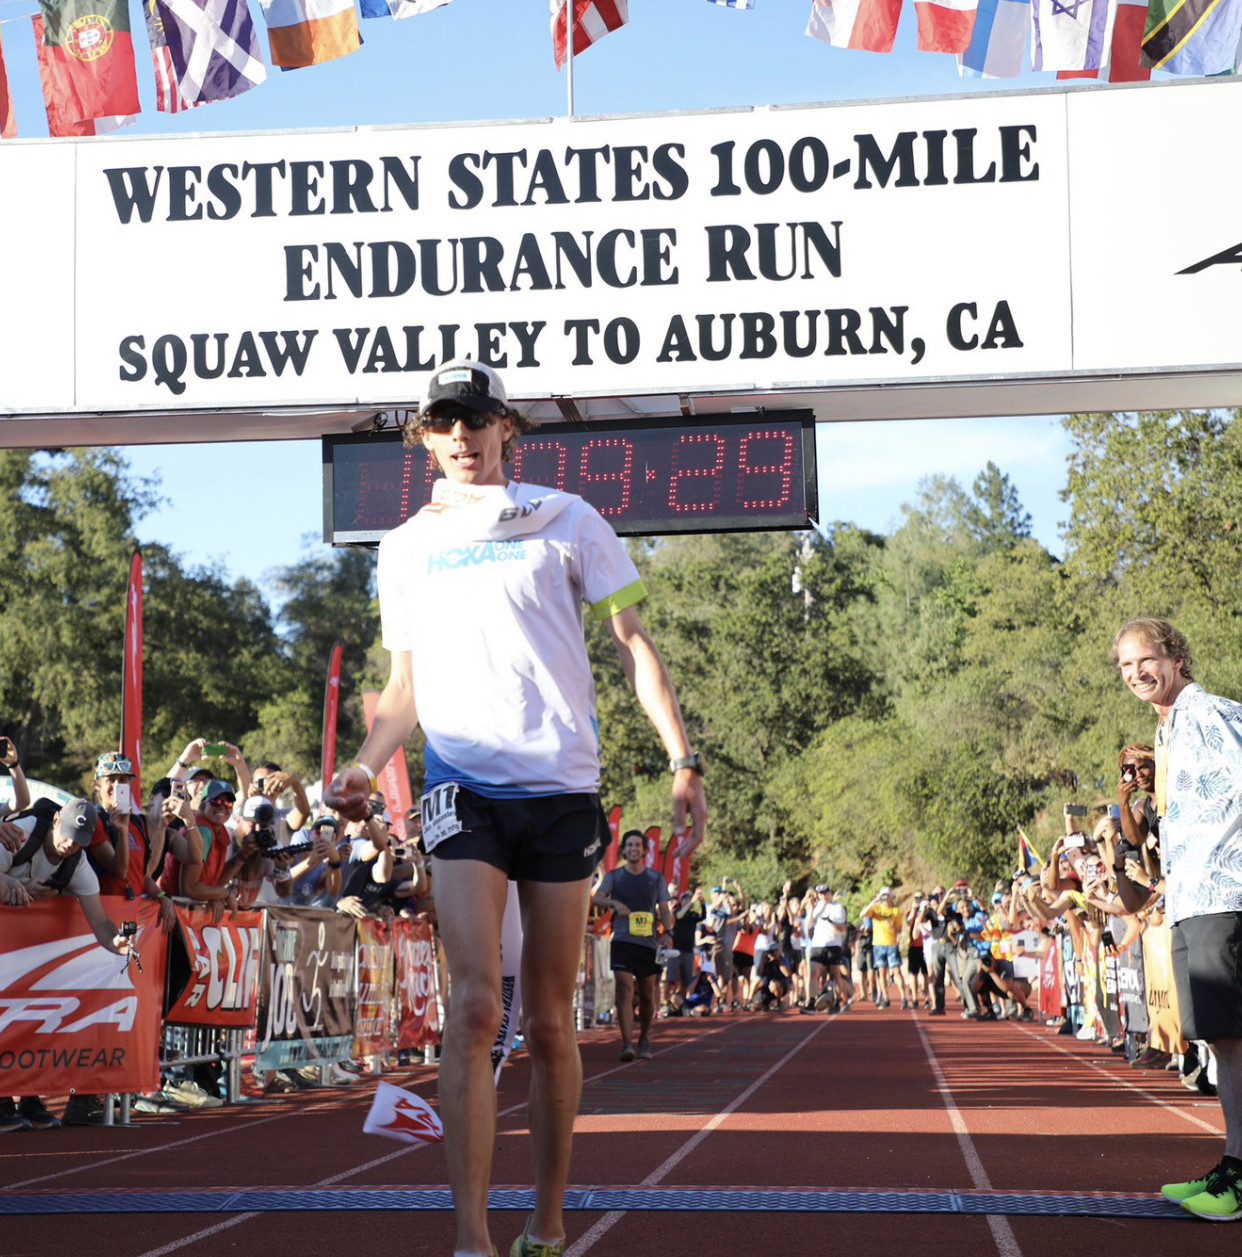 Western States 100 has been cancelled due to the war the world is in gaged in with the Cornavirus